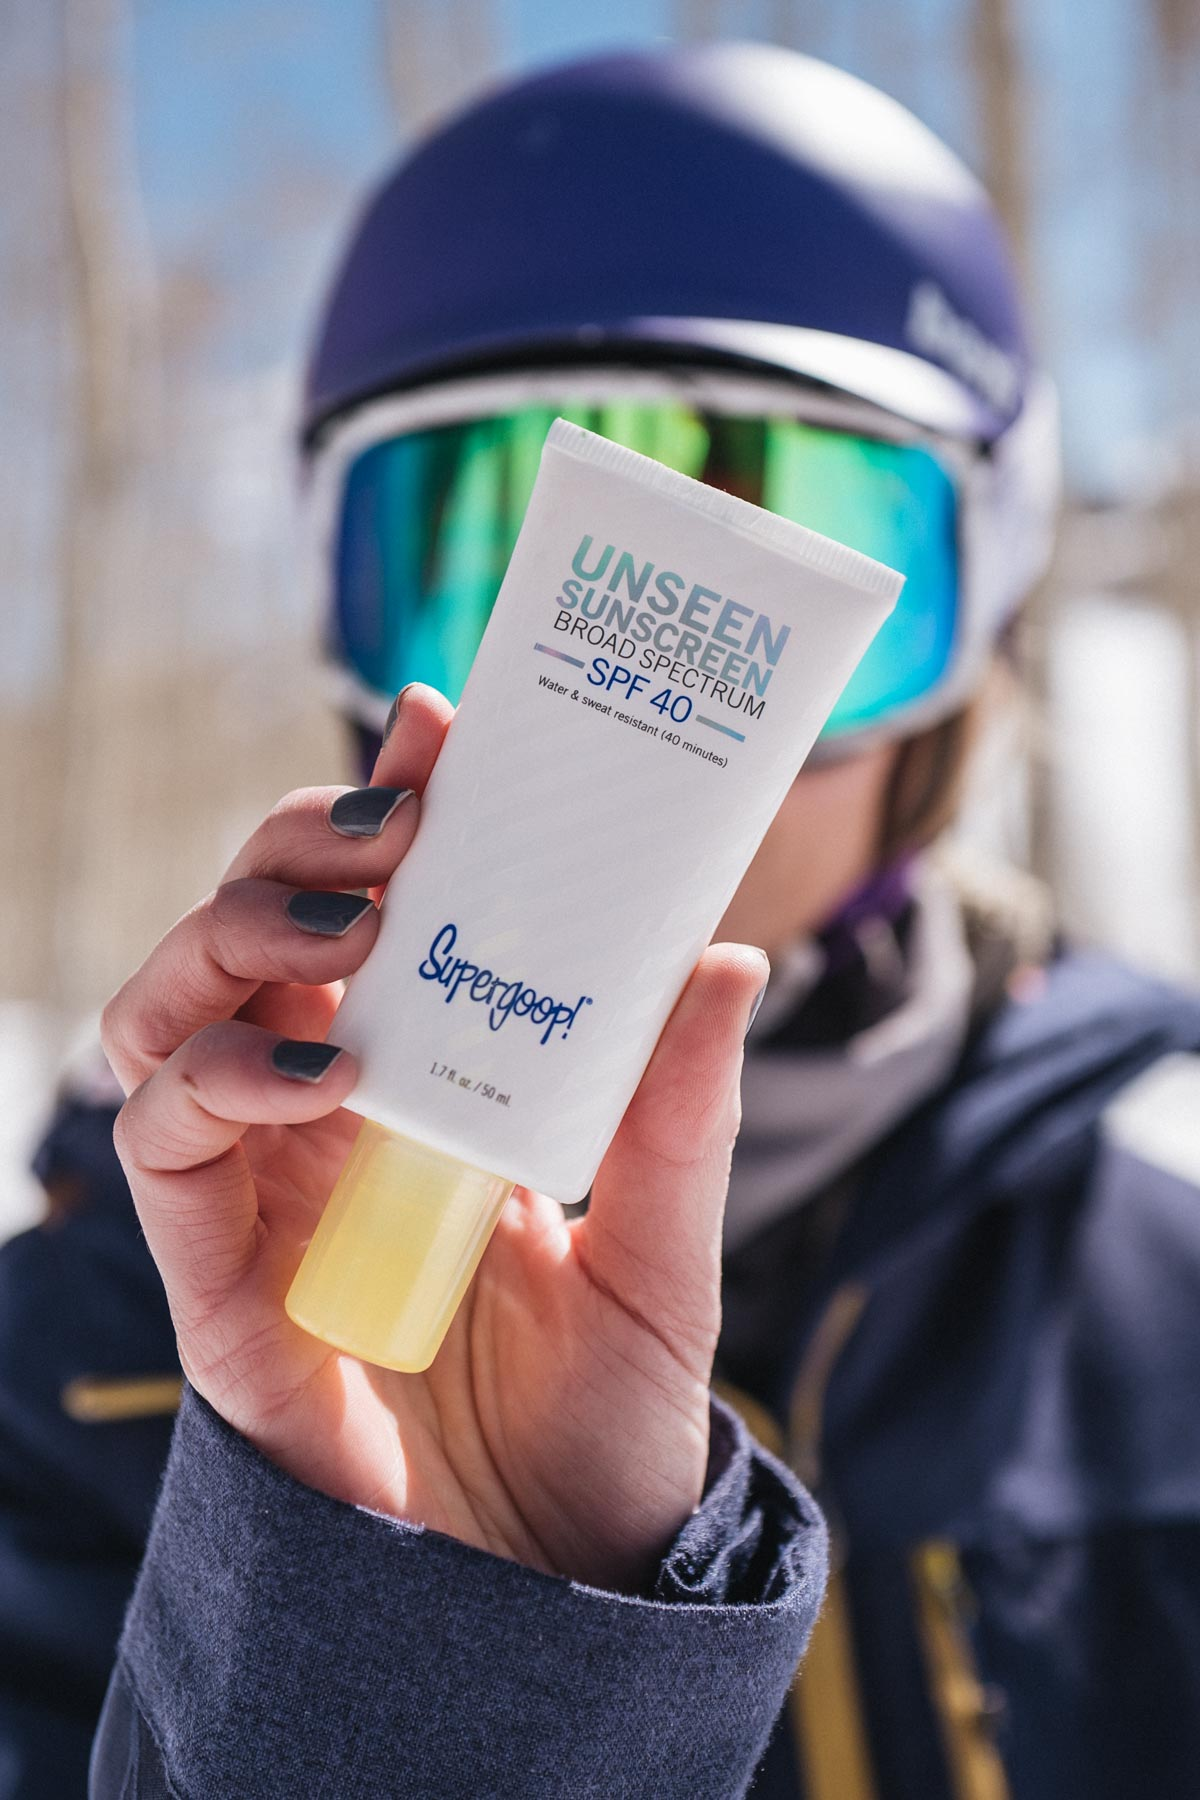 Jess Ann Kirby relies on Supergoop Unseen Sunscreen for protection from the sun while snowboarding